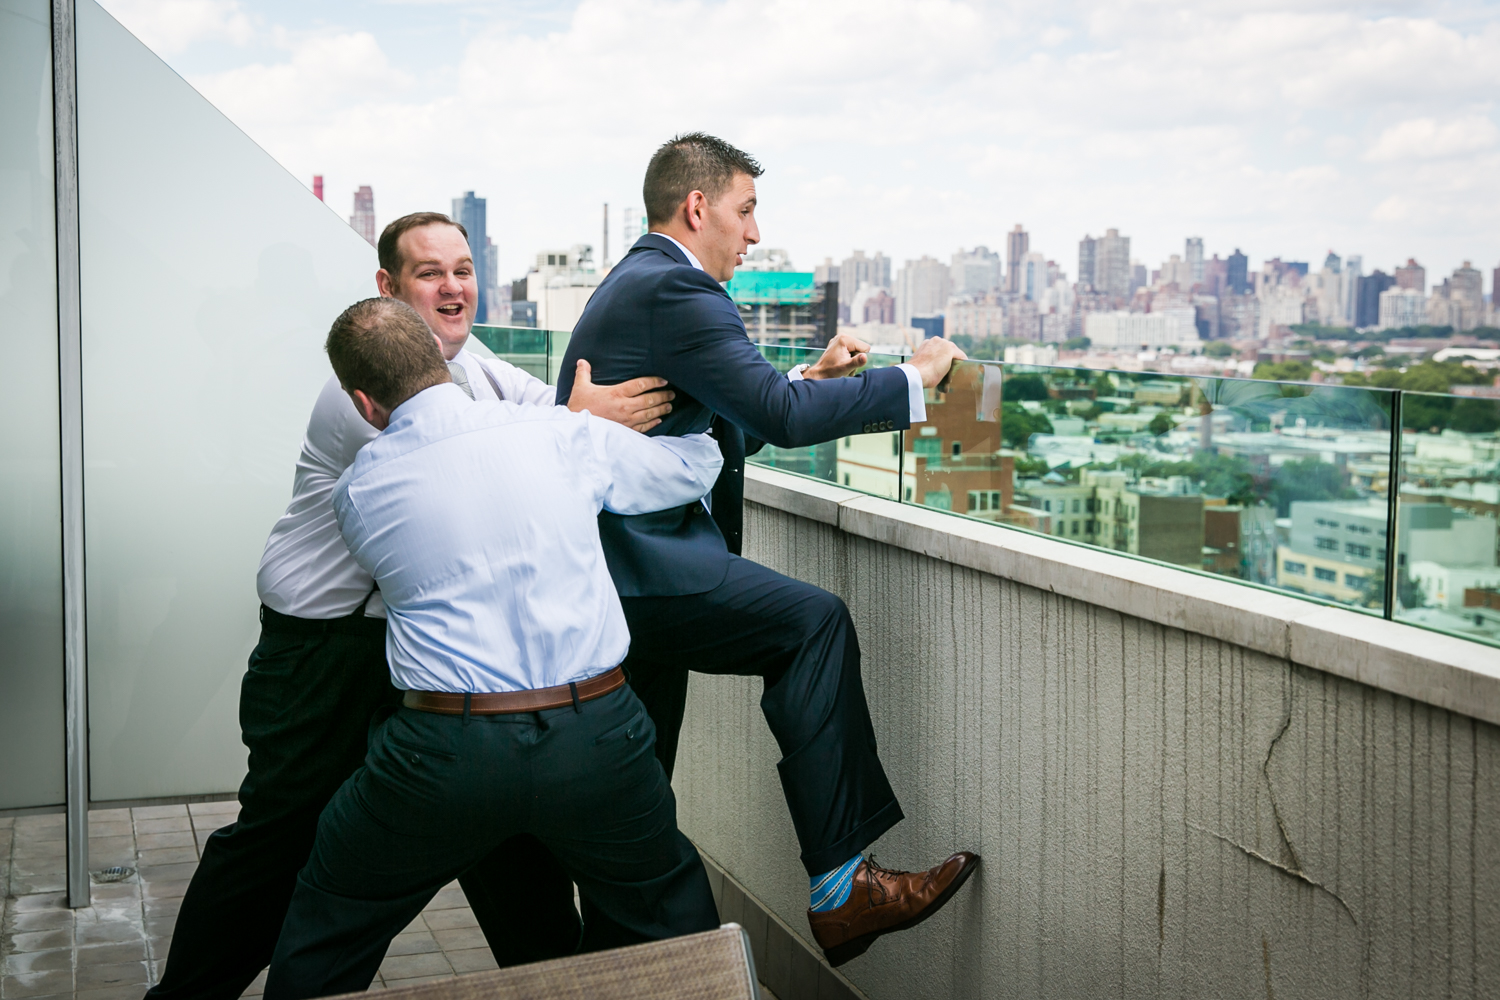 Groom attempting to leap from balcony and held back by two groomsmen